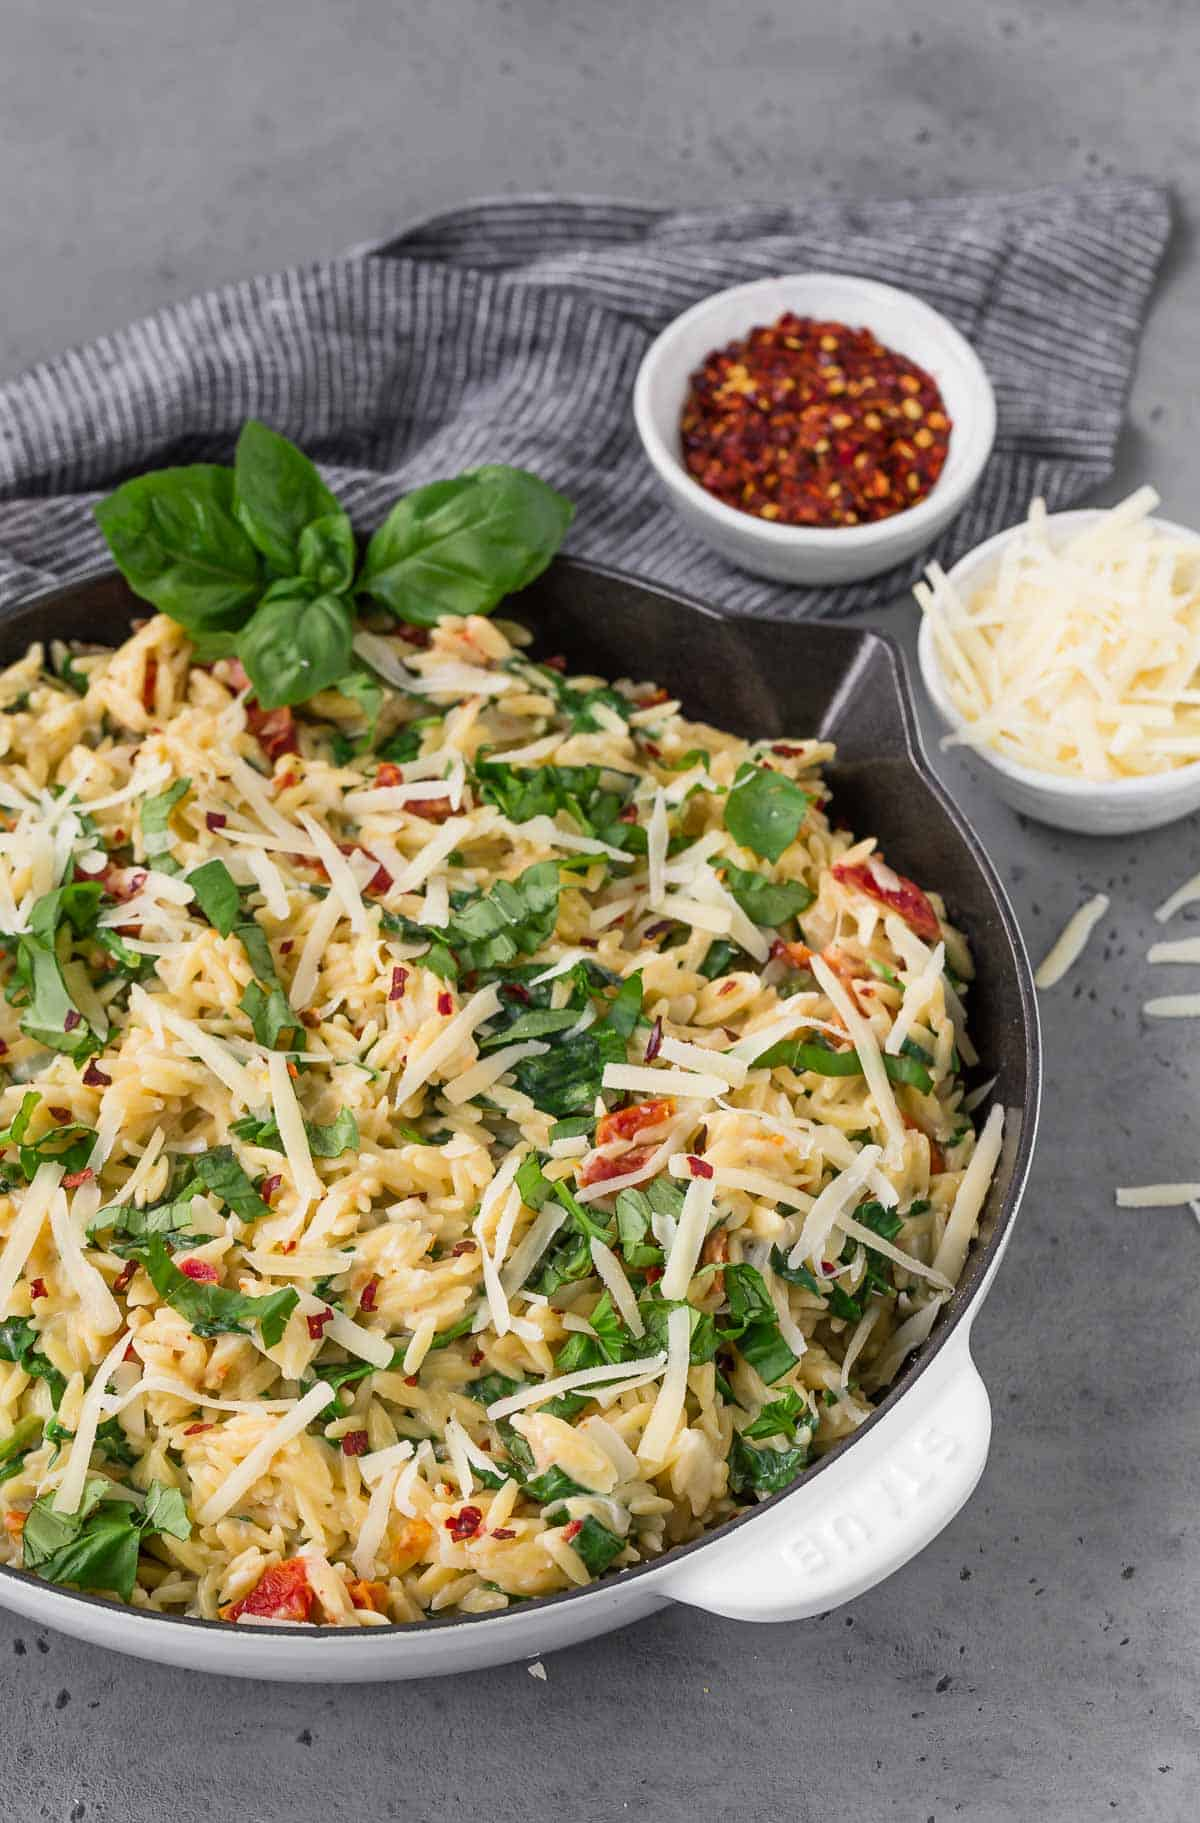 A white and black skillet on a grey surface, filled with creamy orzo with spinach, sundried tomatoes, and basil.